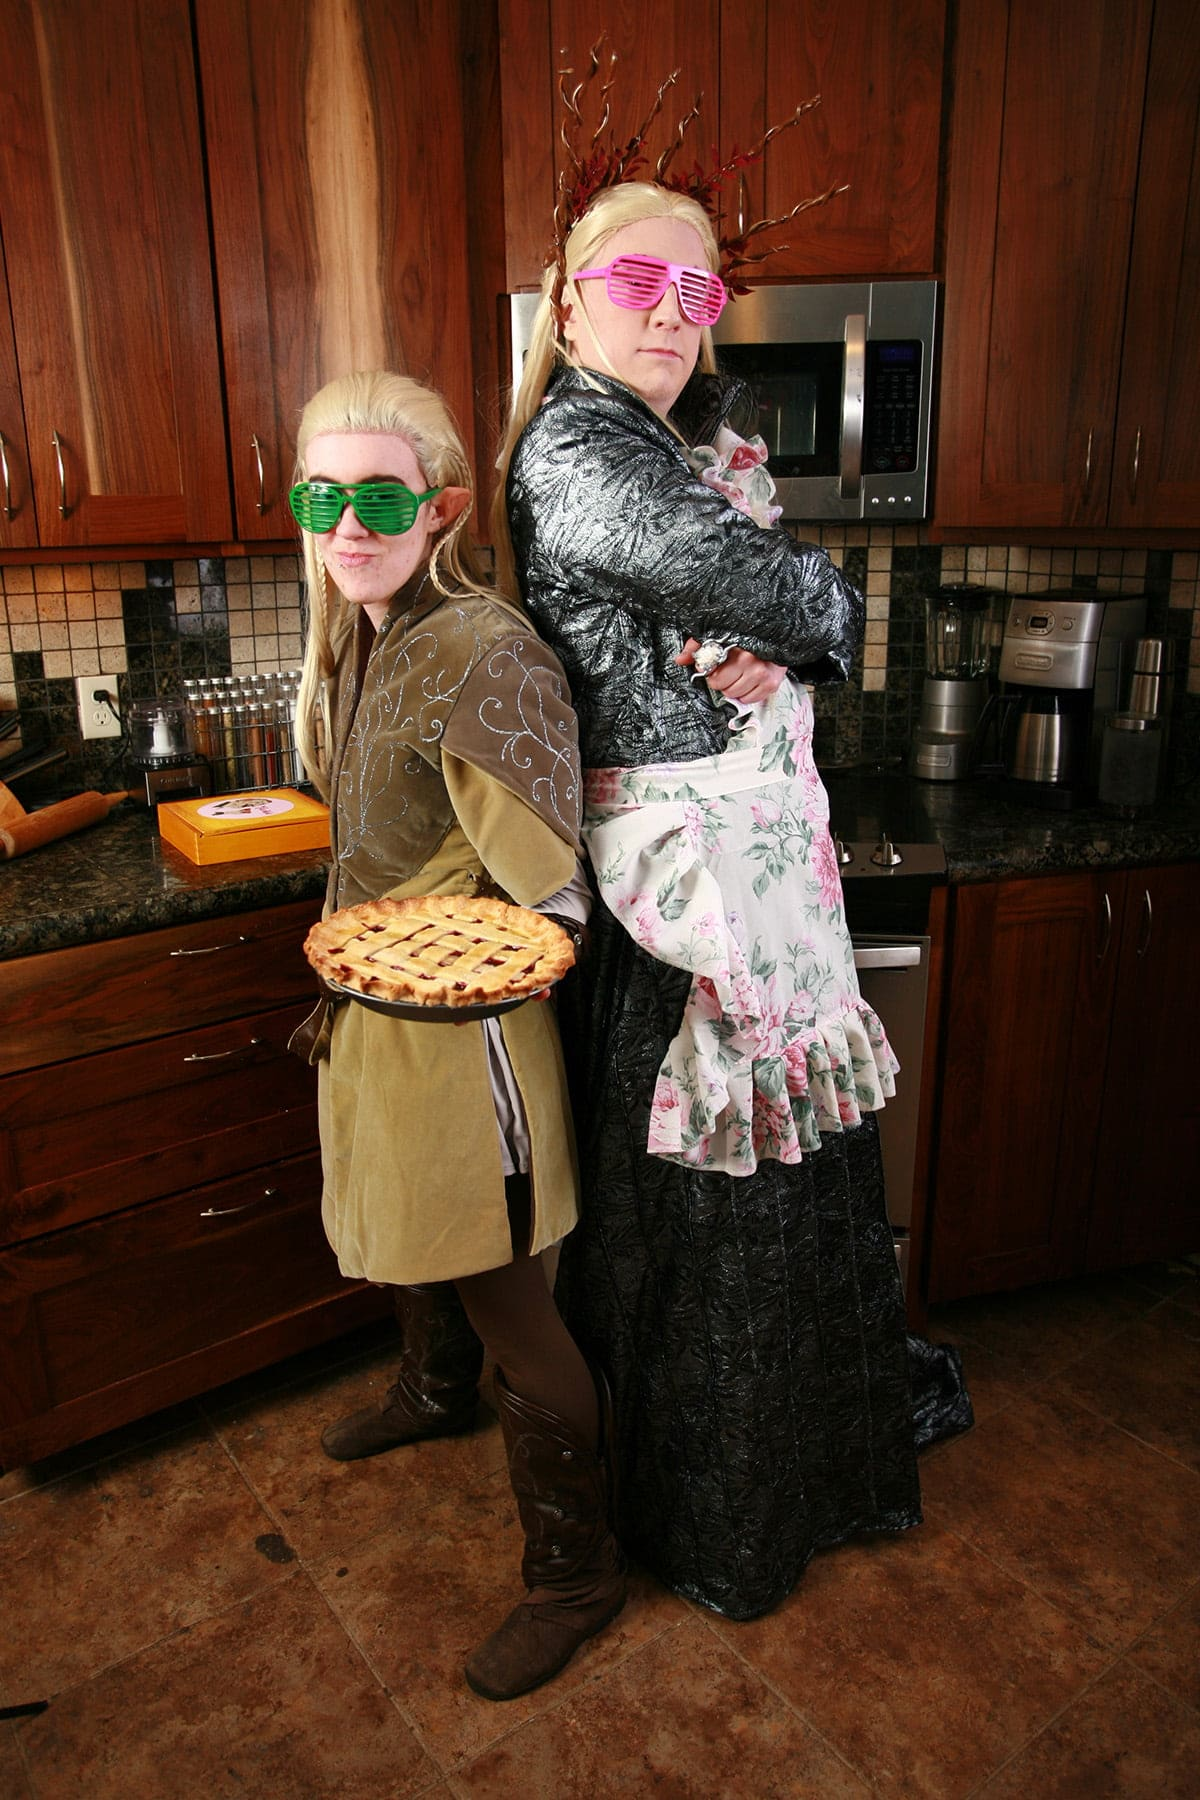 Cosplayers dressed as Thranduil and Legolas are back to back in the kitchen. Legolas is holding a pie, and both are wearing 80s style slat sunglasses.